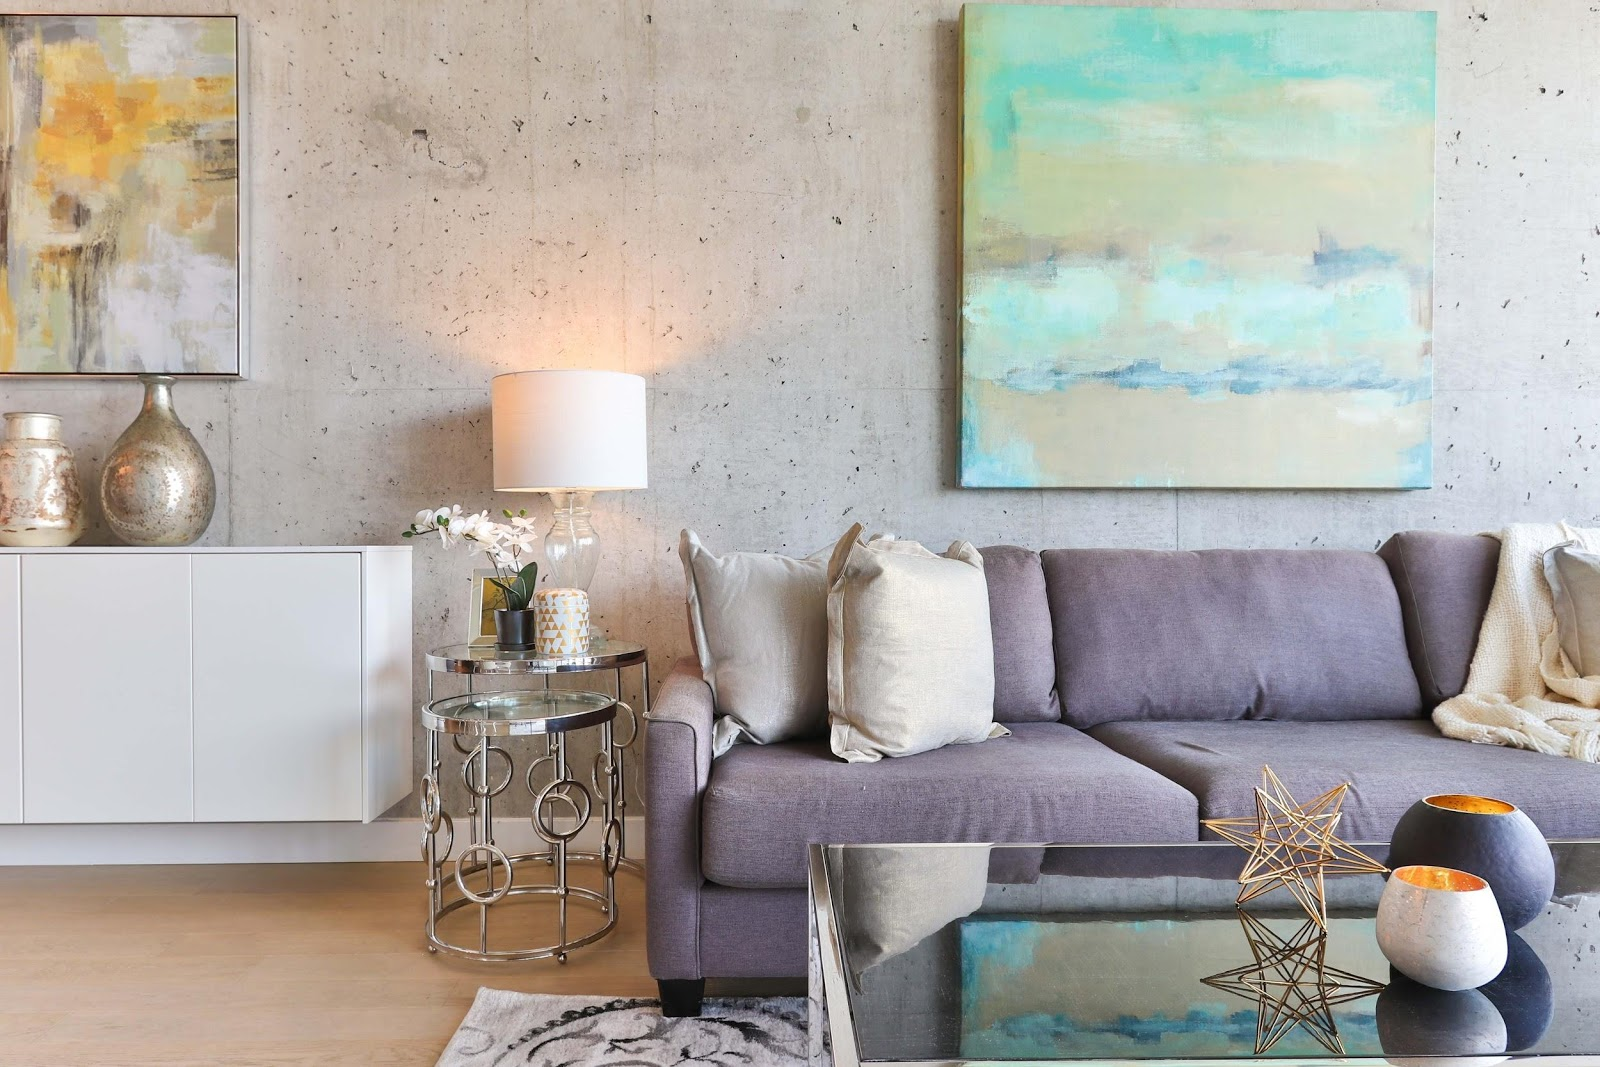 Hang different artworks on the wall